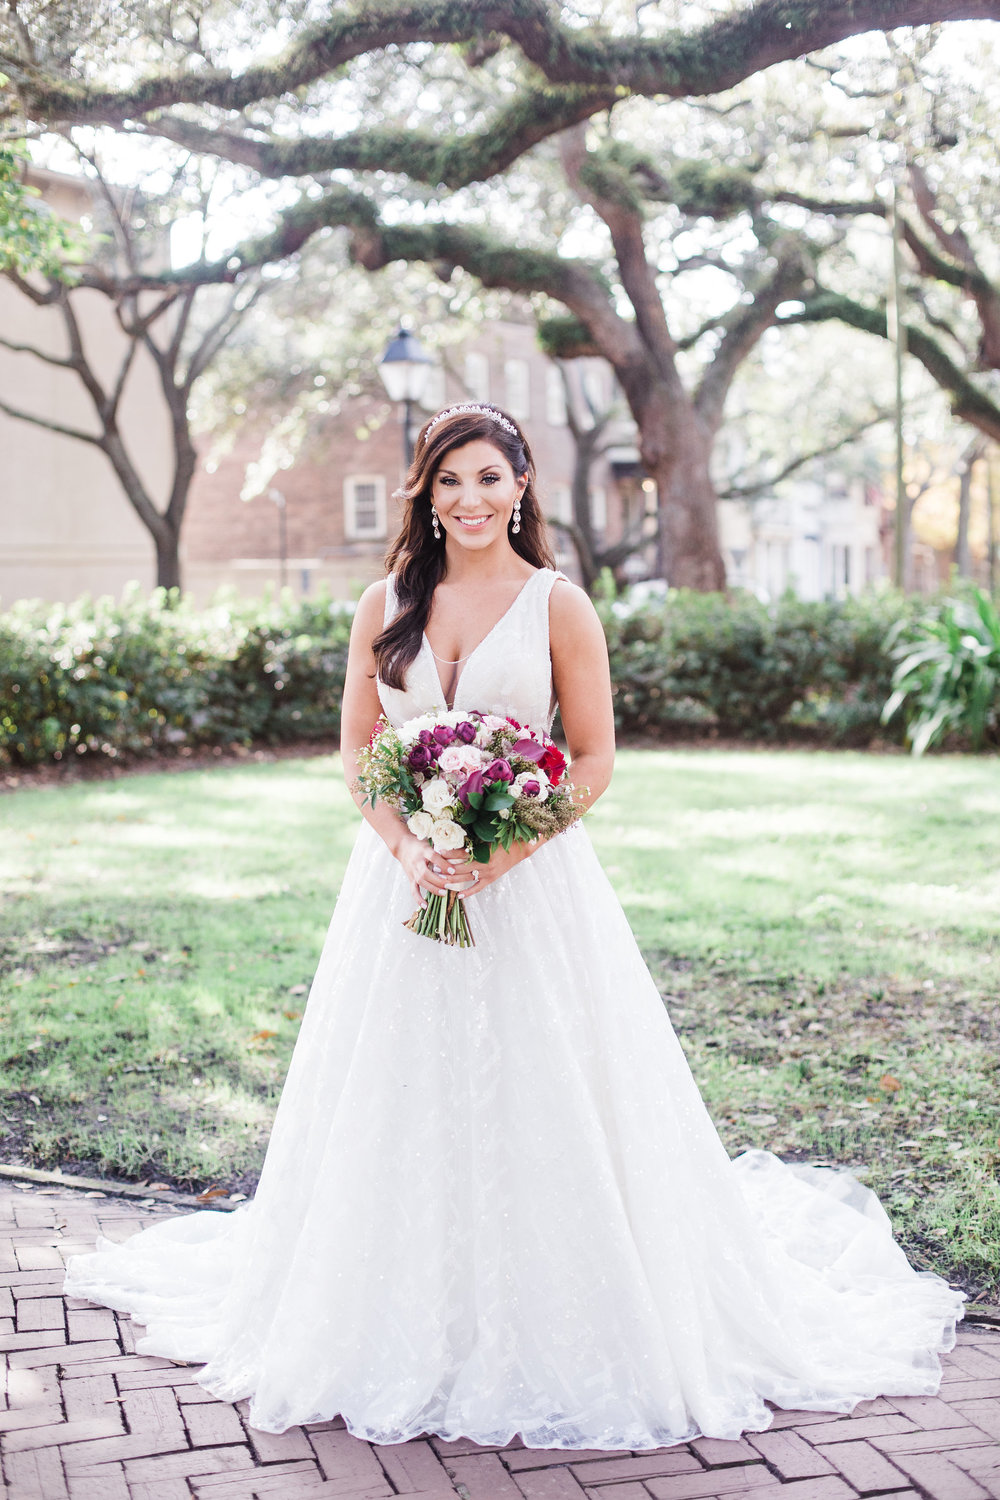 apt-b-photography-lindsey-shawn-Savannah-wedding-photographer-savannah-elopement-photographer-historic-savannah-elopement-savannah-weddings-hilton-head-wedding-photographer-jekyll-island-wedding-photographer-20.jpg